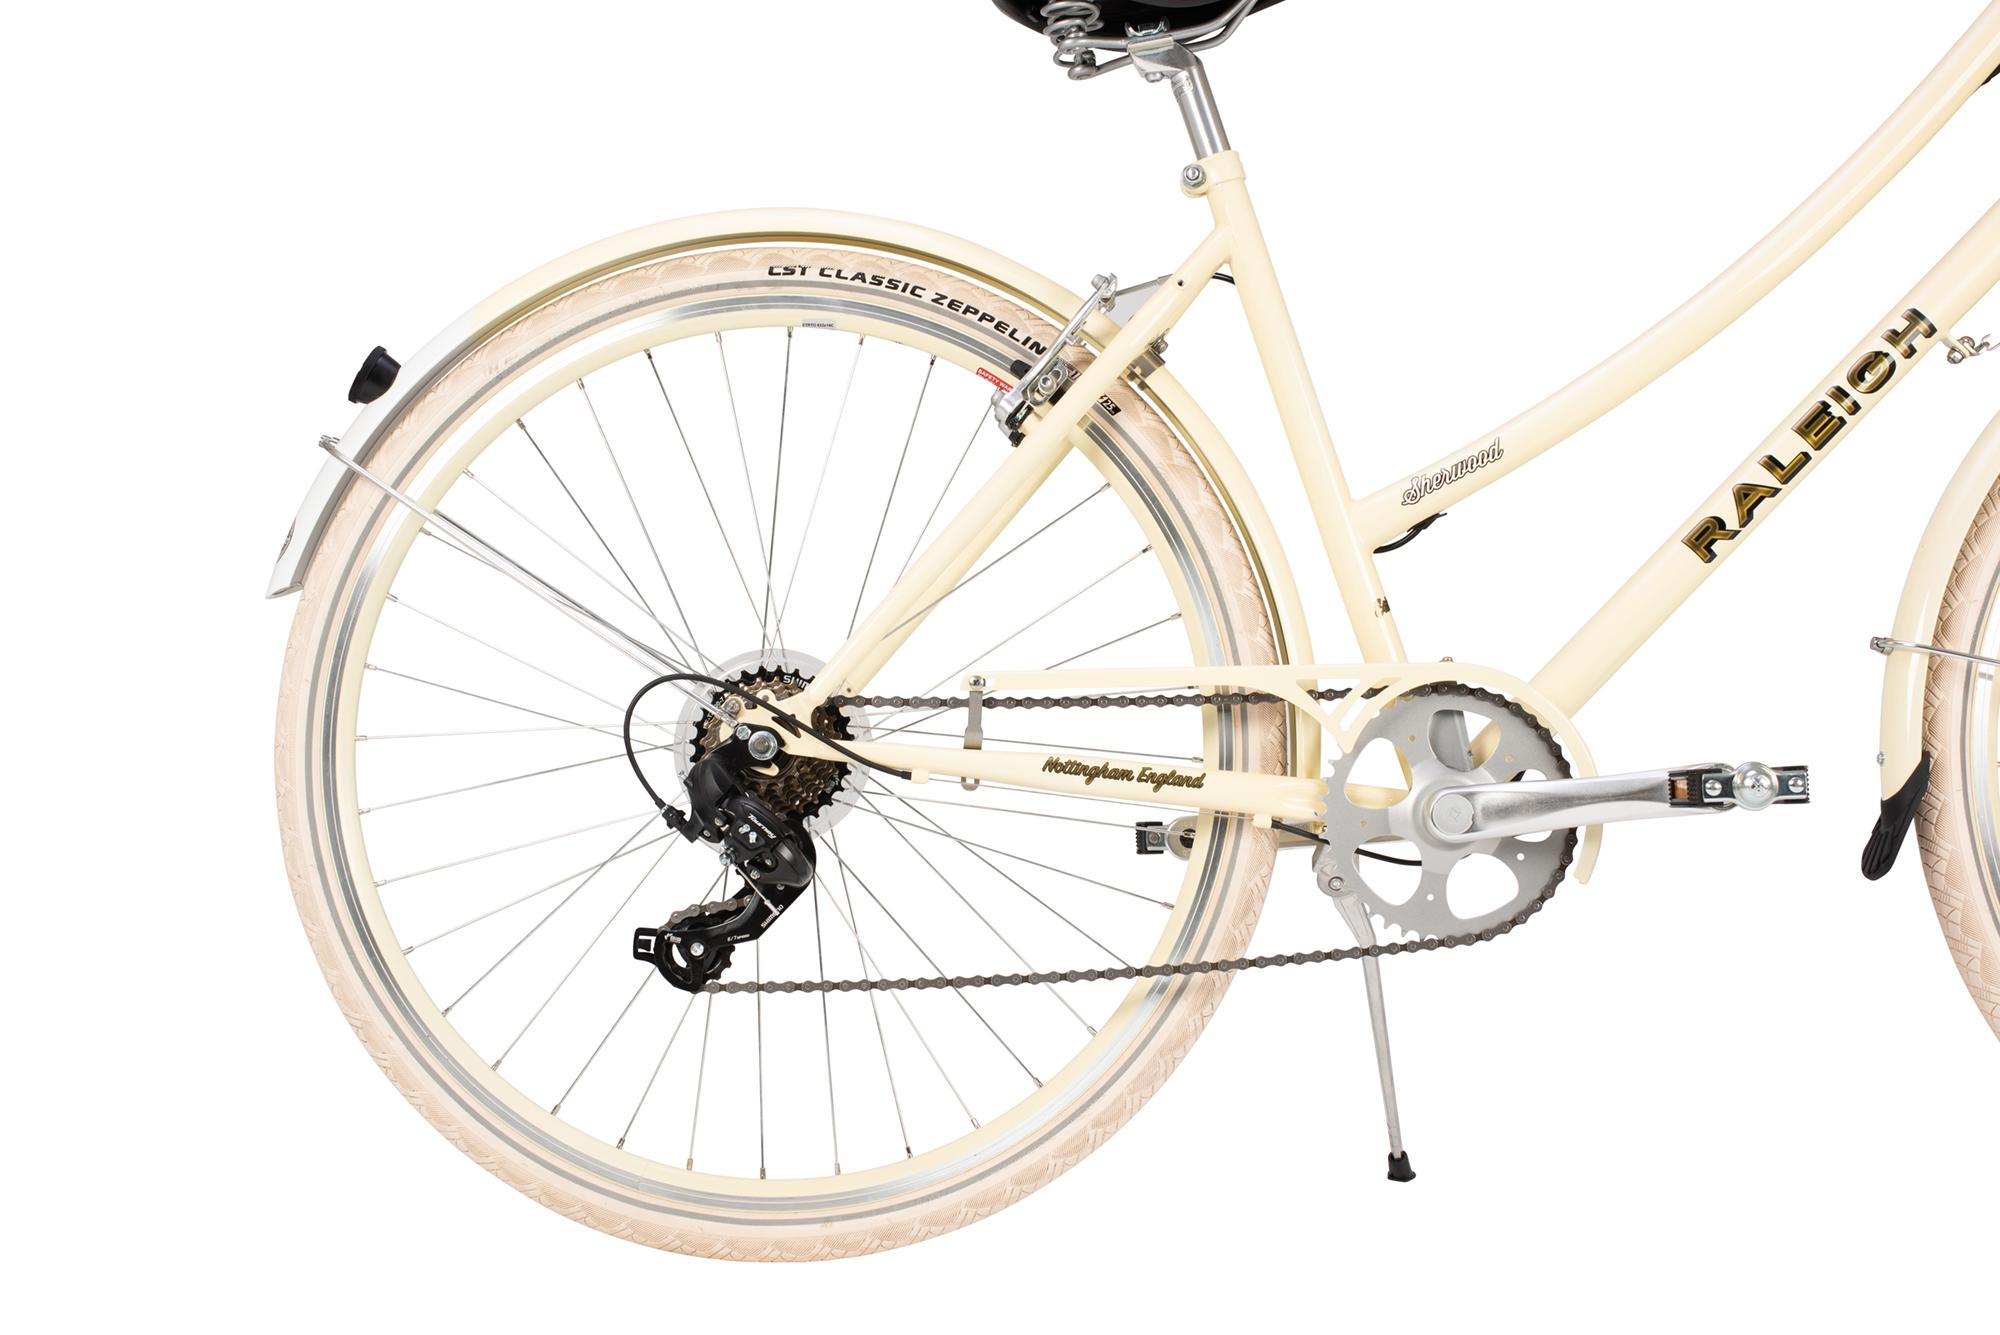 Rear wheel and drivetrain on the Raleigh Sherwood classic ladies bike